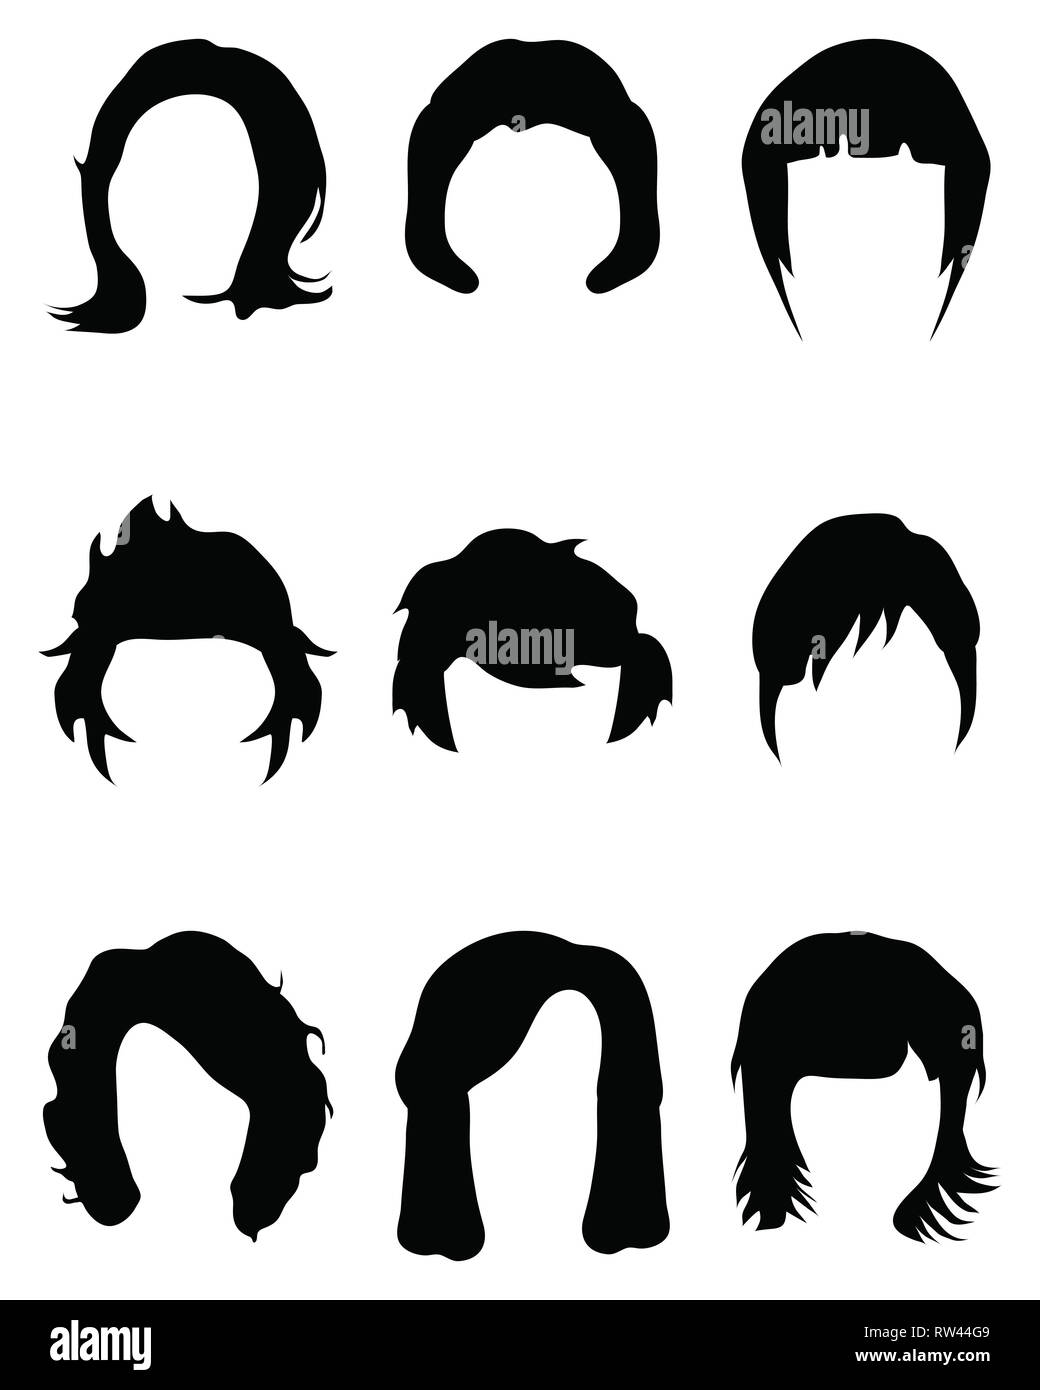 Silhouettes of hair styling on a white background - Stock Image